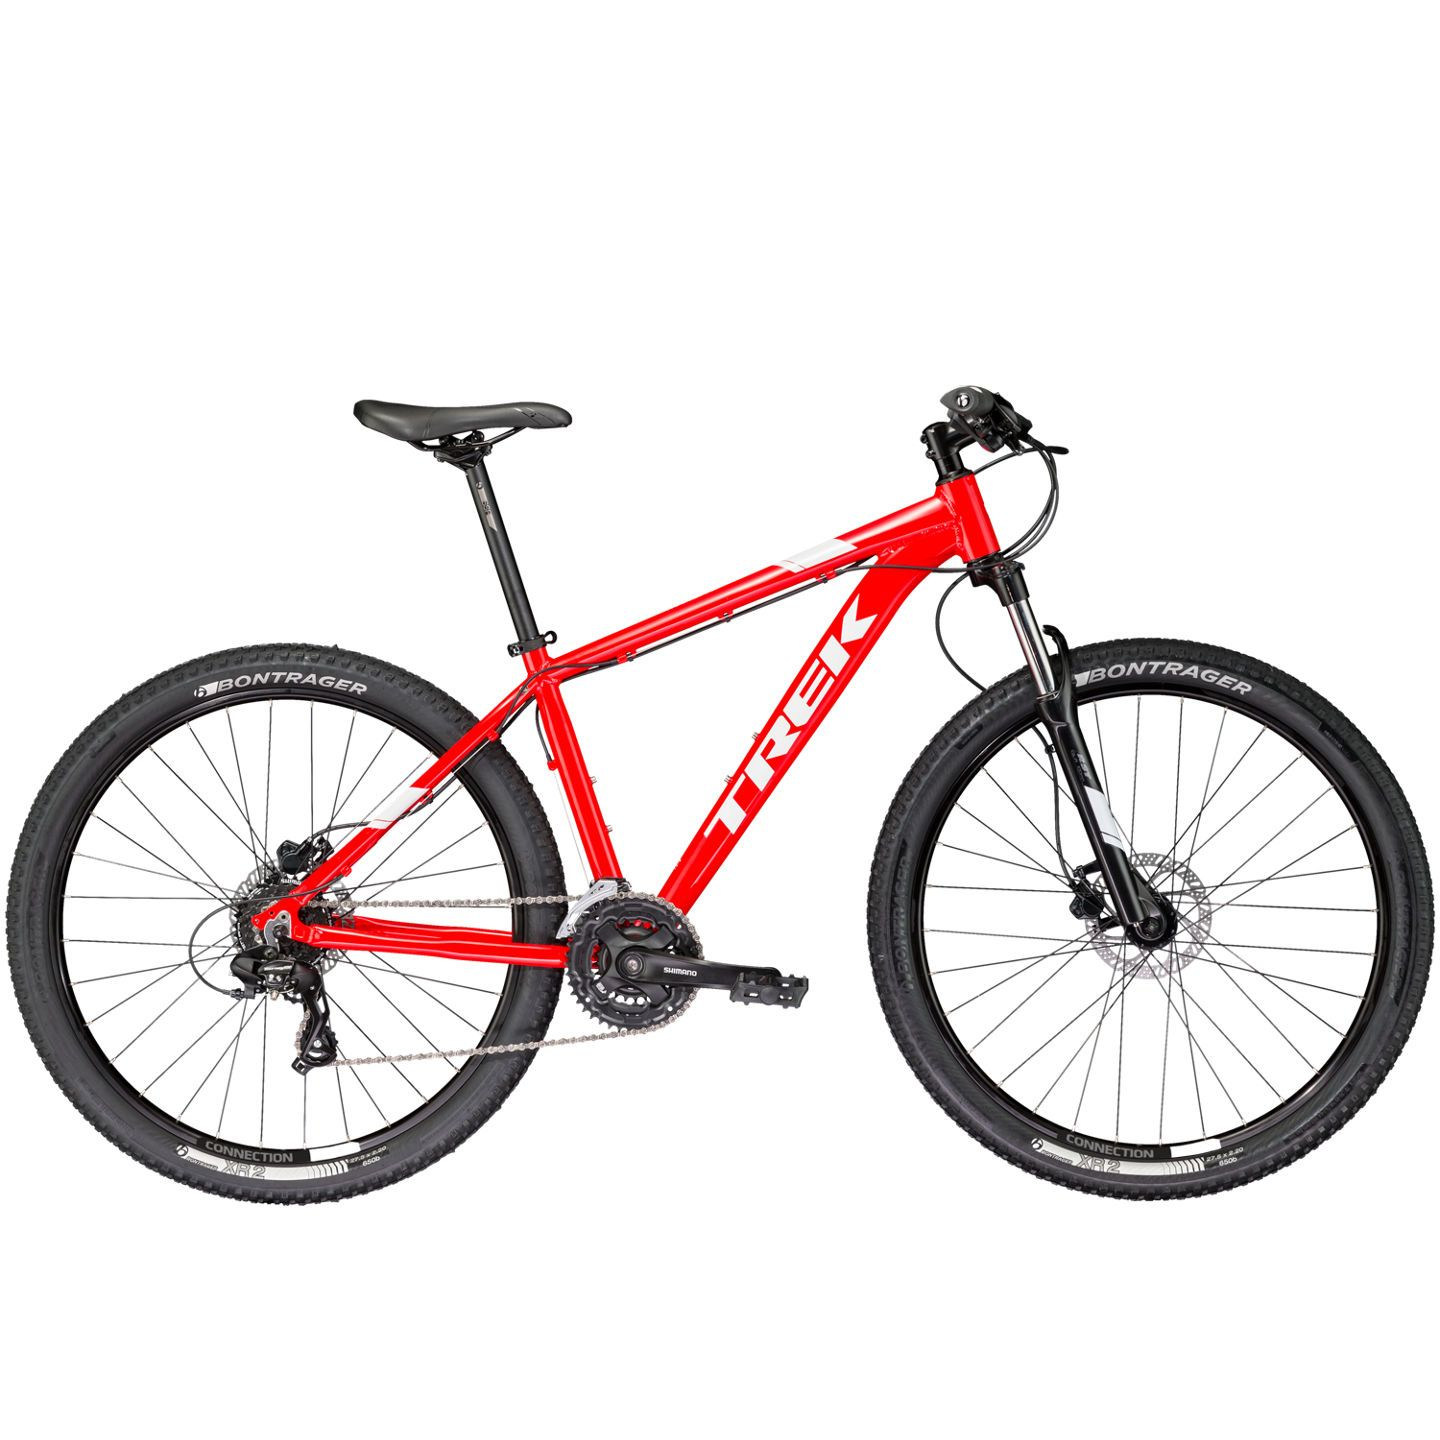 VTT semi-rigide Trek Marlin 6 Rouge 2017 - 15.5\